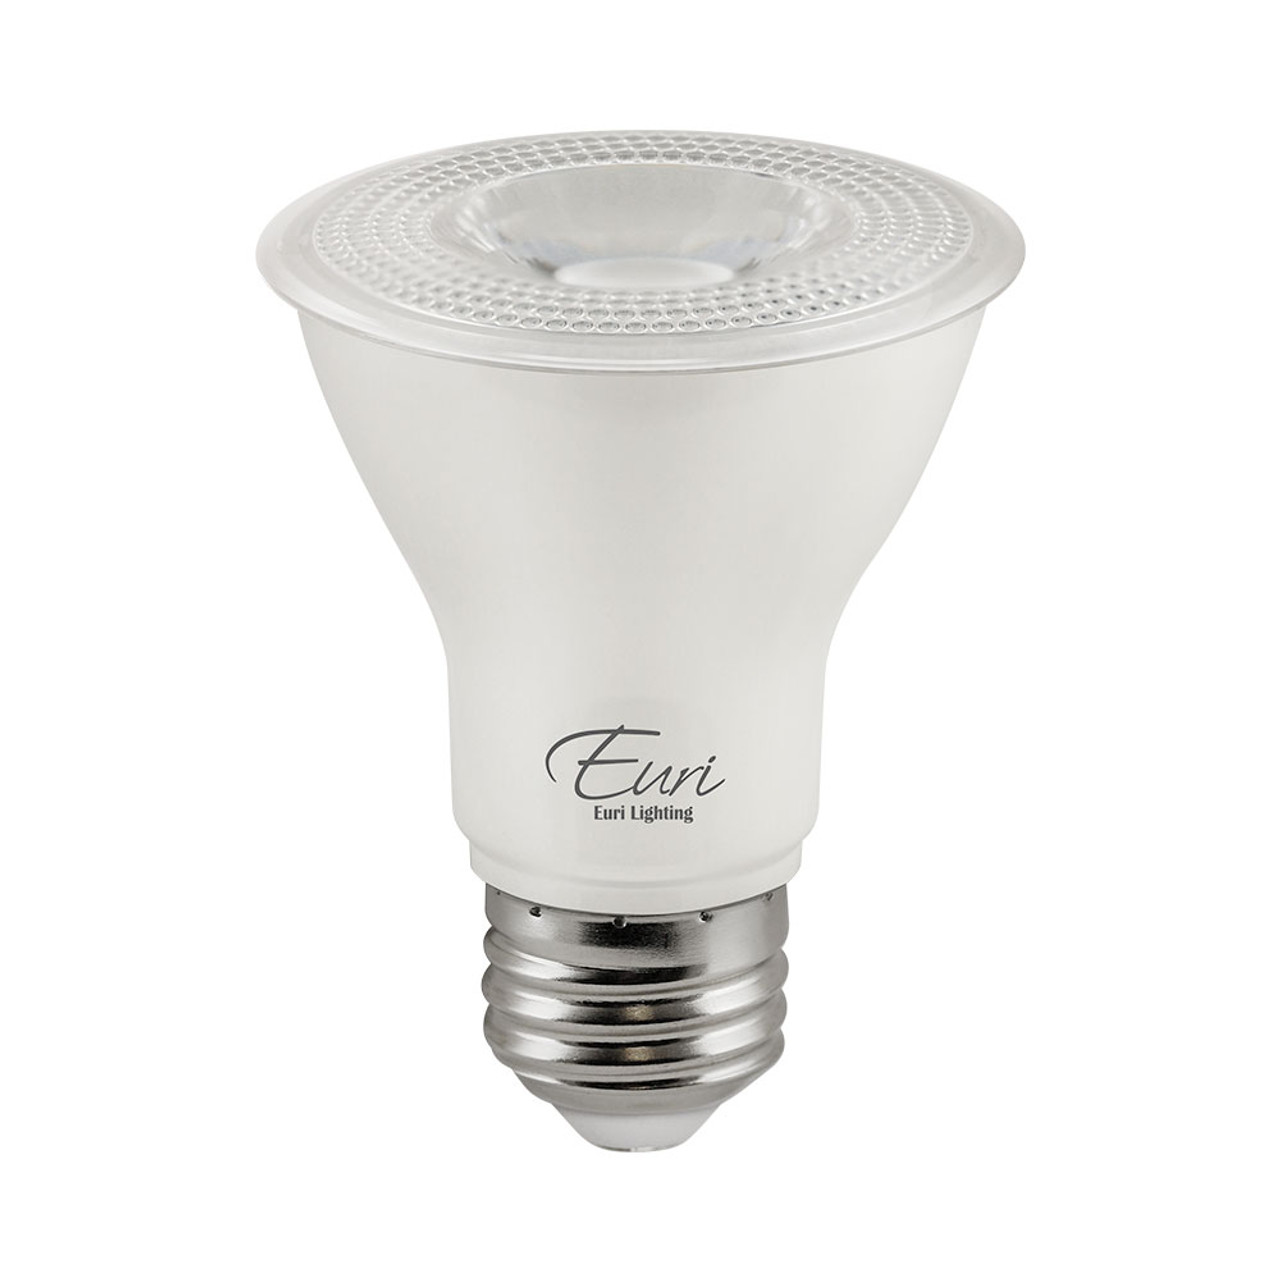 PAR20, Directional (Wide Spot), LED Light Bulb, Dimmable, 7 W, 120 V, 500 lm, 2700 K, Halogen Look, Value-Pack (Qty. 2), E26 Base (EP20-7W6020e-2)